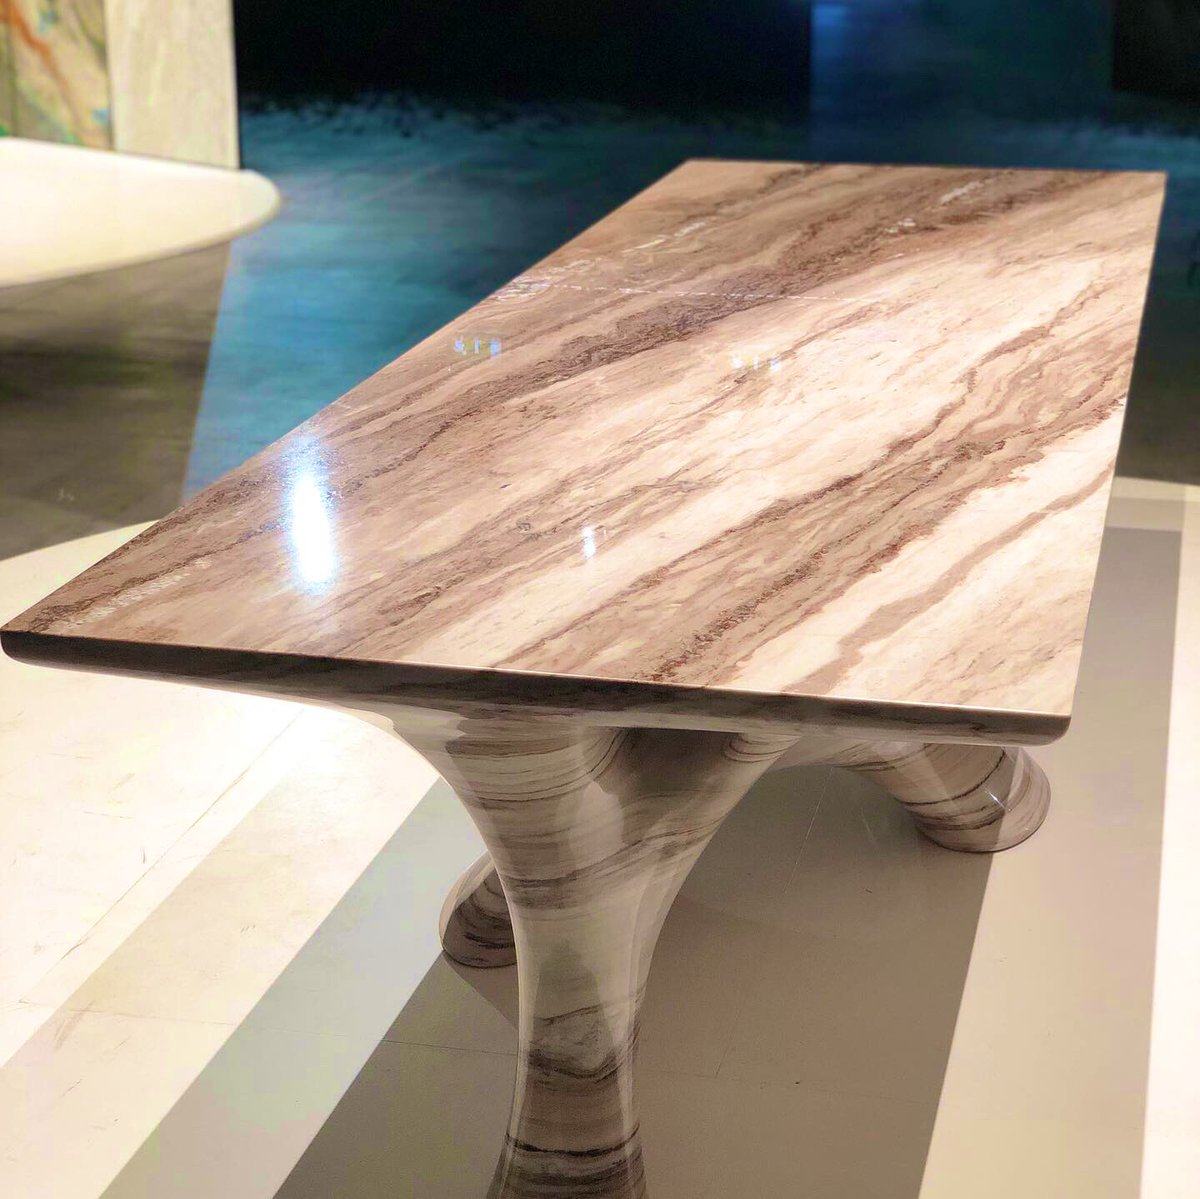 The beautiful Coral Table Designed by Dustin White  Produce by Palissandro Marble  #marmomac2019 #marble #naturalstone #art #marmo #dinningtable #stonework #marbledesign #interordesigner #luxurymarble  #marbletable #luxuryproduct #digitalarchitecture #theitalianstonetheatre https://t.co/ggxNxCZZoA